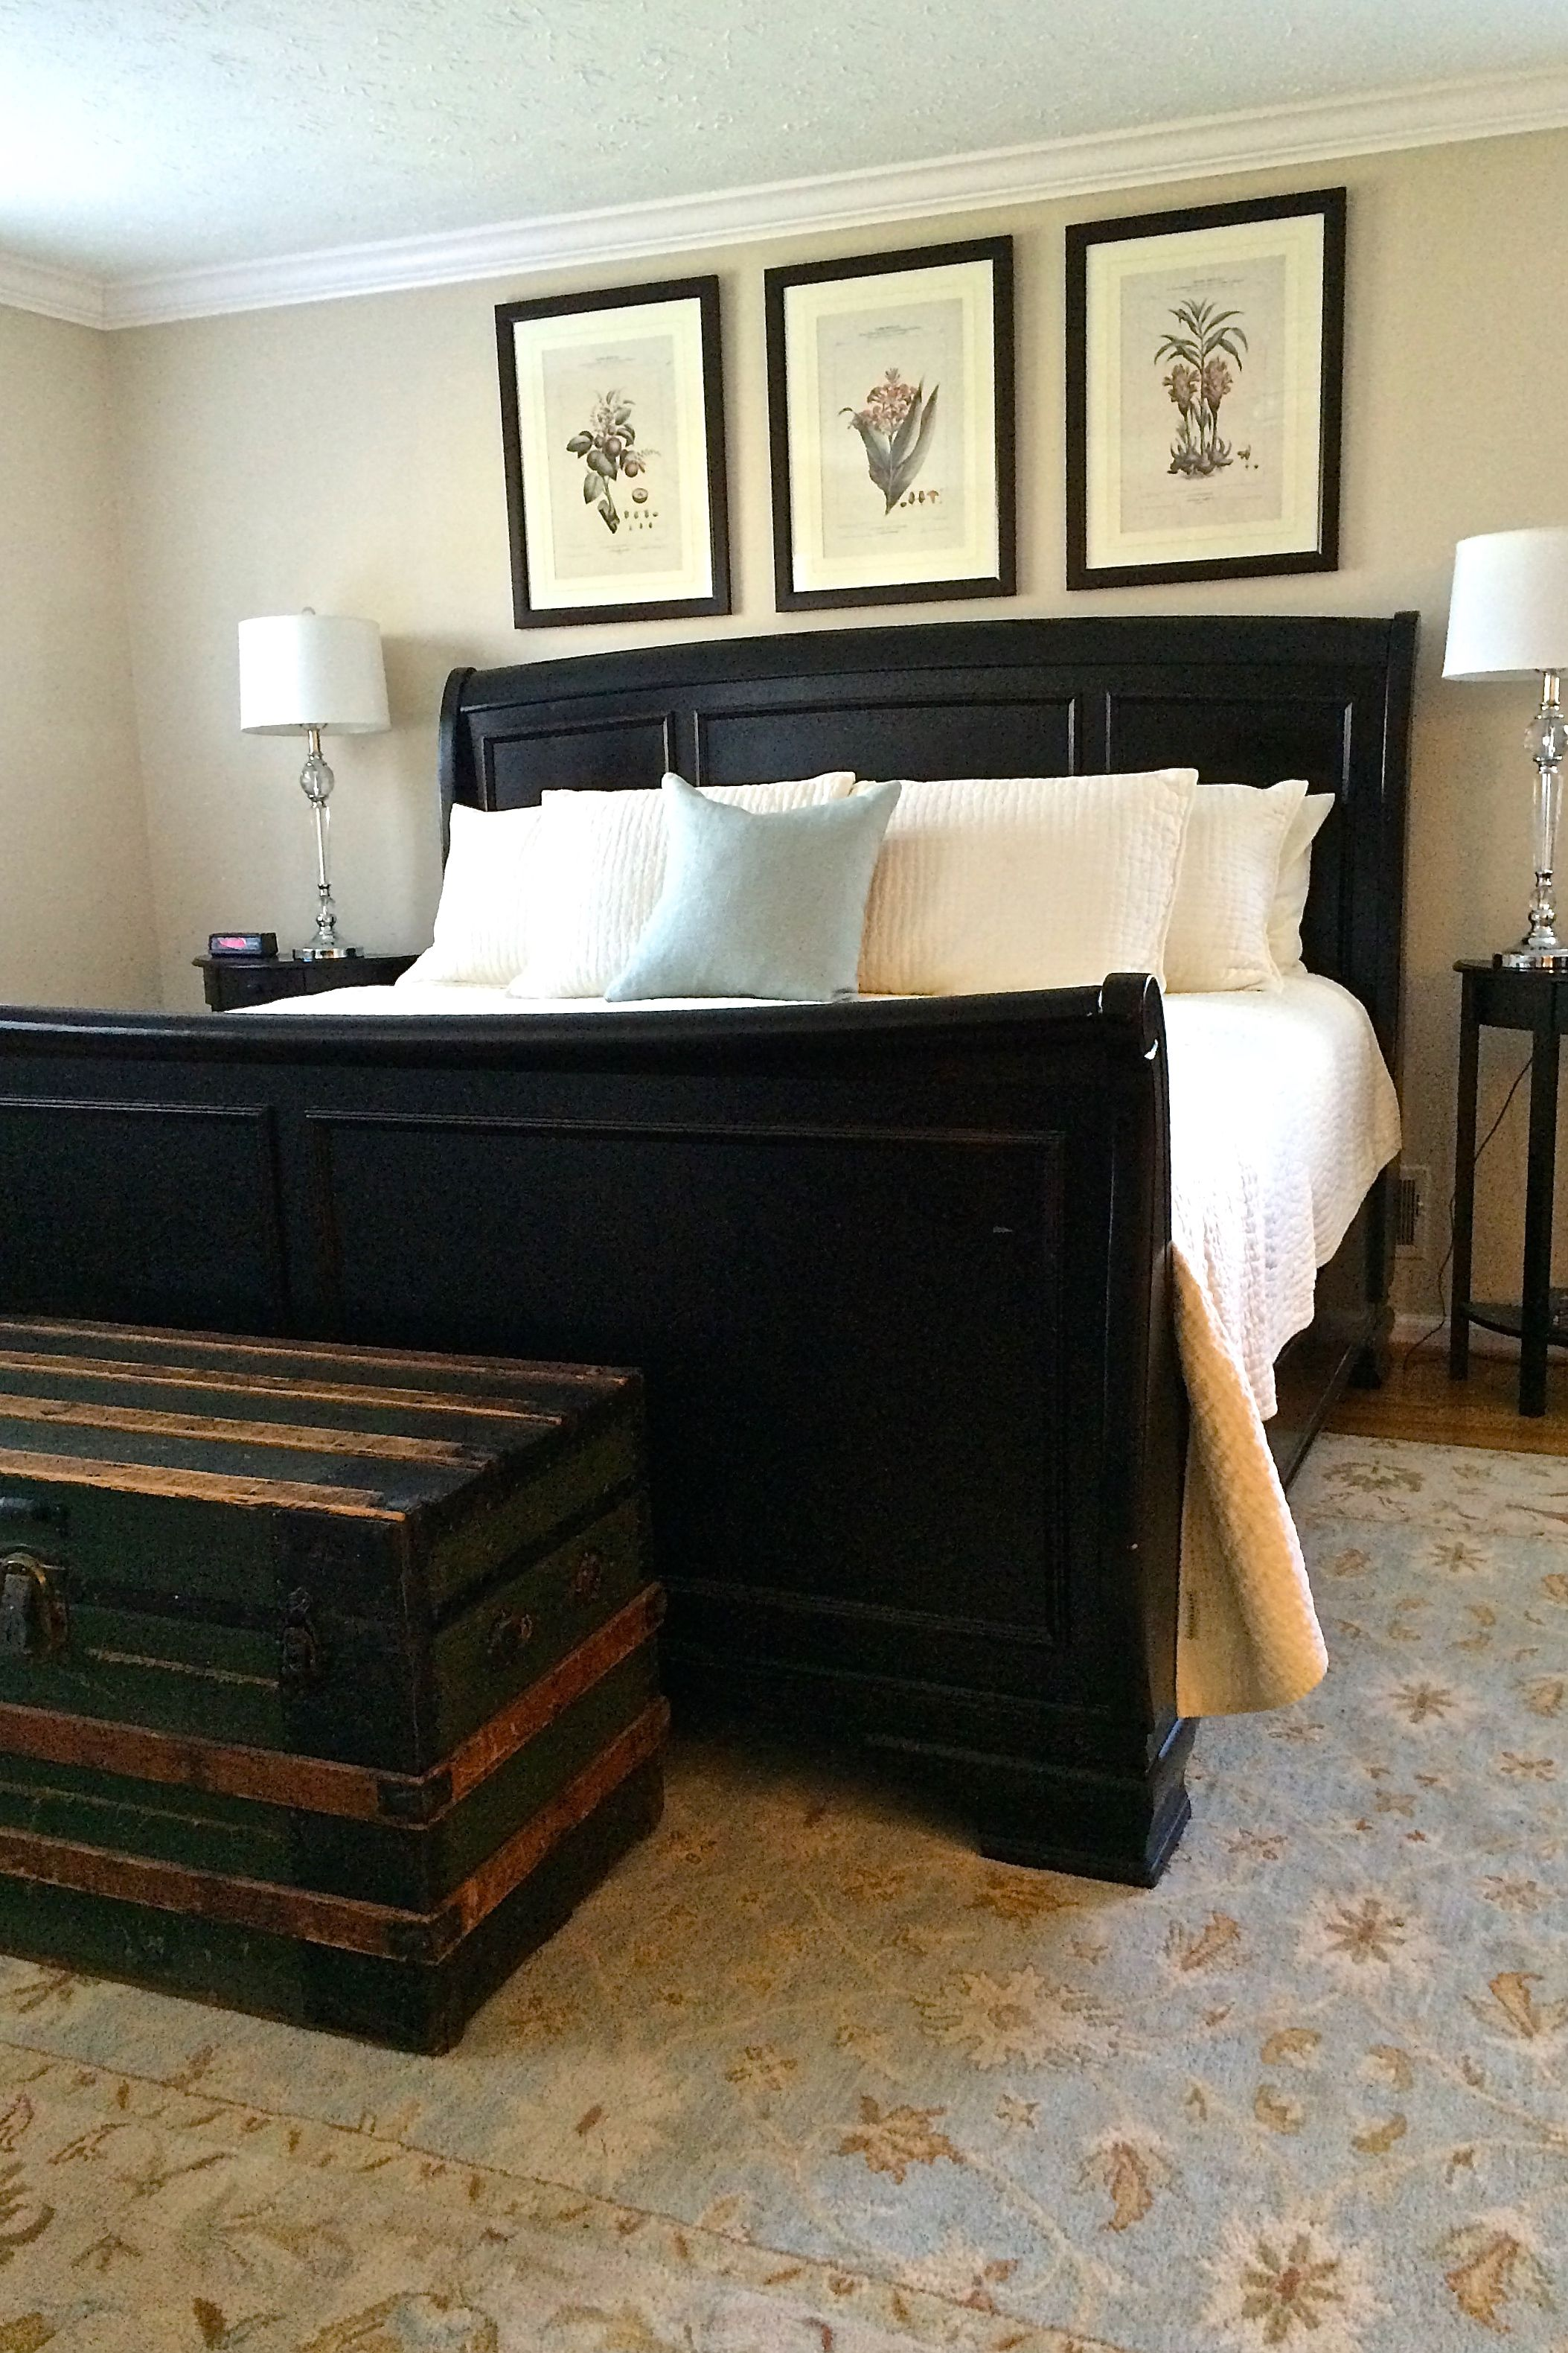 Master Bedroom With A Jet Black Sleigh Bed From Pottery Barn Lush Super Comforab Discount Bedroom Furniture Black Bedroom Furniture Painted Bedroom Furniture